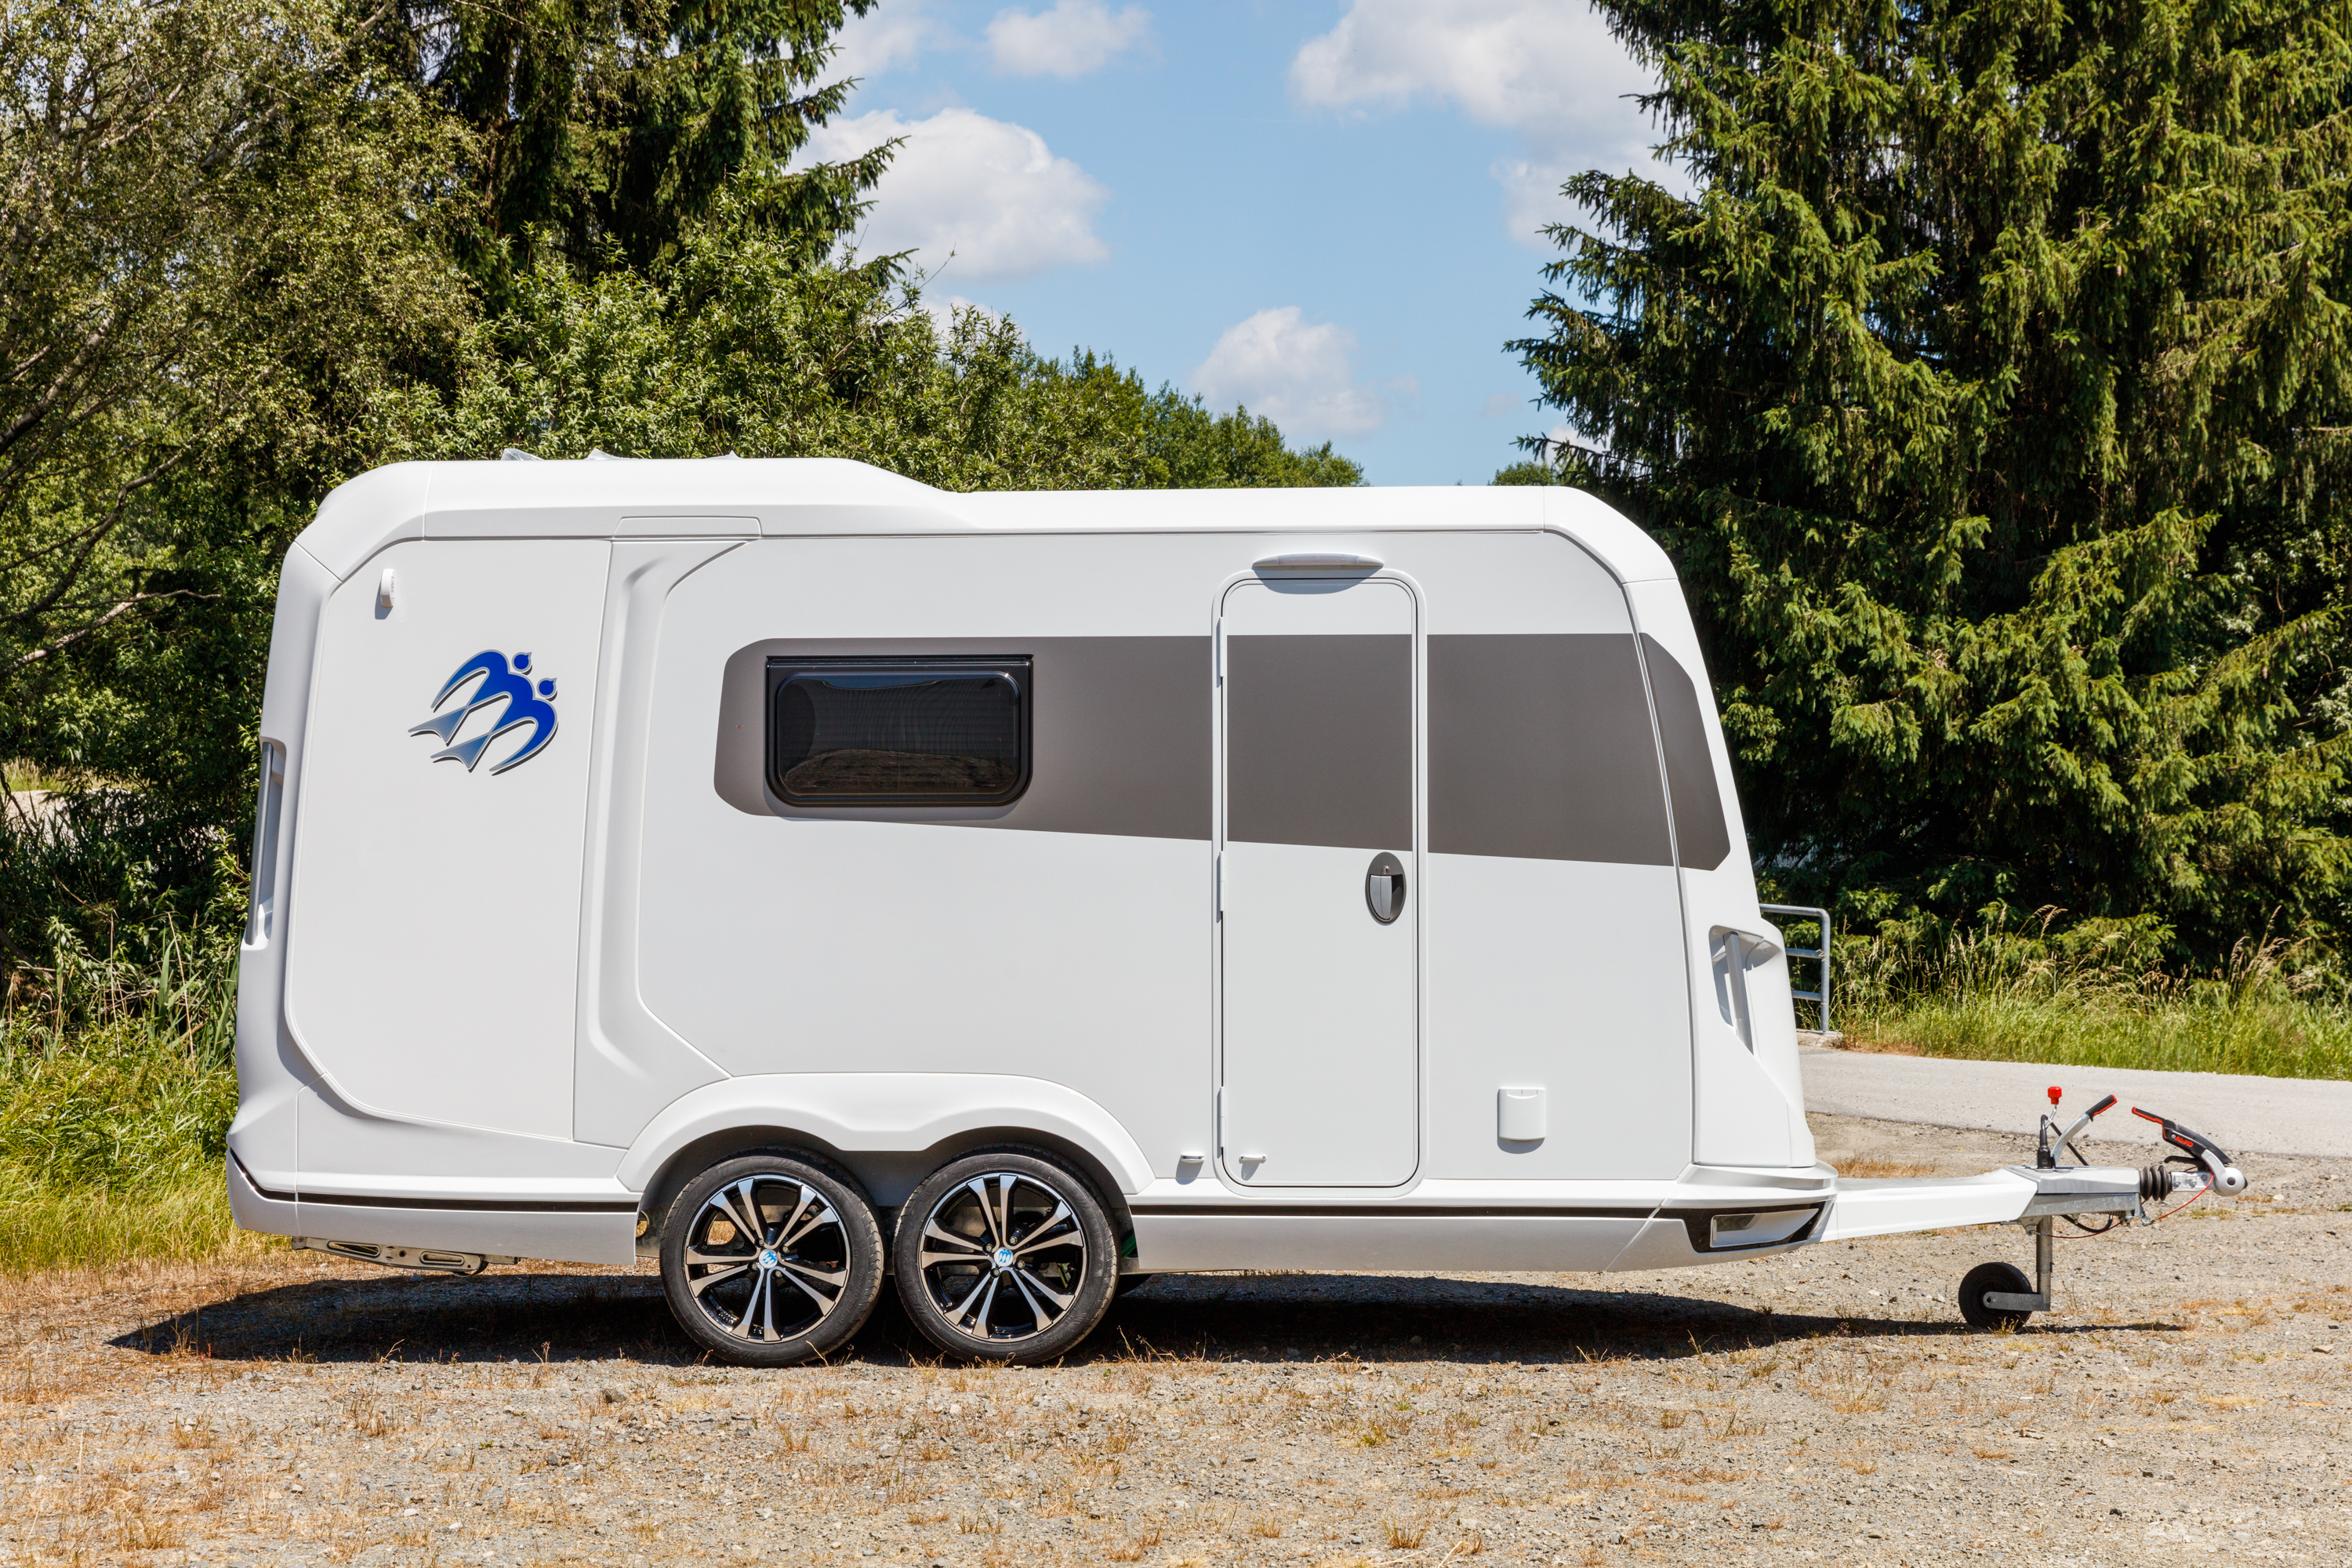 Amusing Trailers Page Beauer 3x Camper Usa This Trailer Transforms Into A Tiny Apartment Sale Curbed Archives curbed Beauer 3x Camper For Sale In Usa